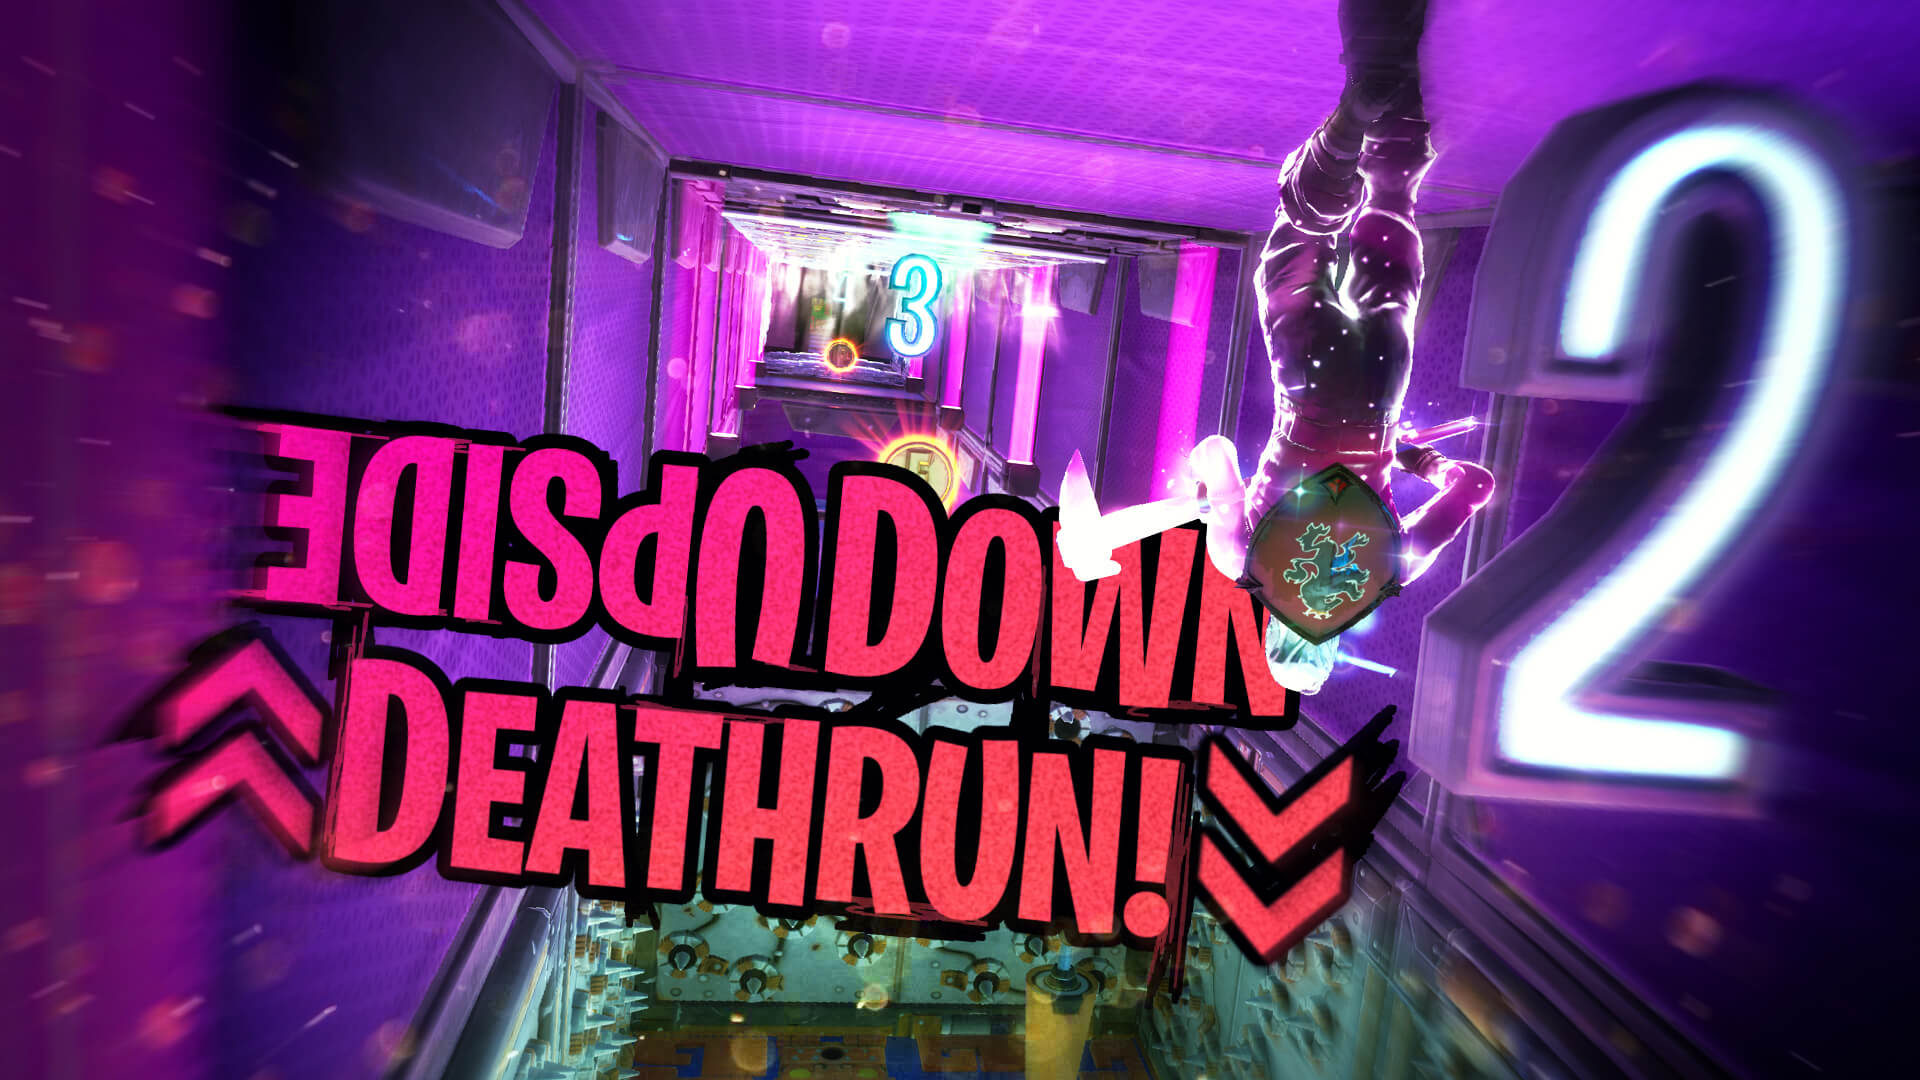 UPSIDE DOWN DEATHRUN!